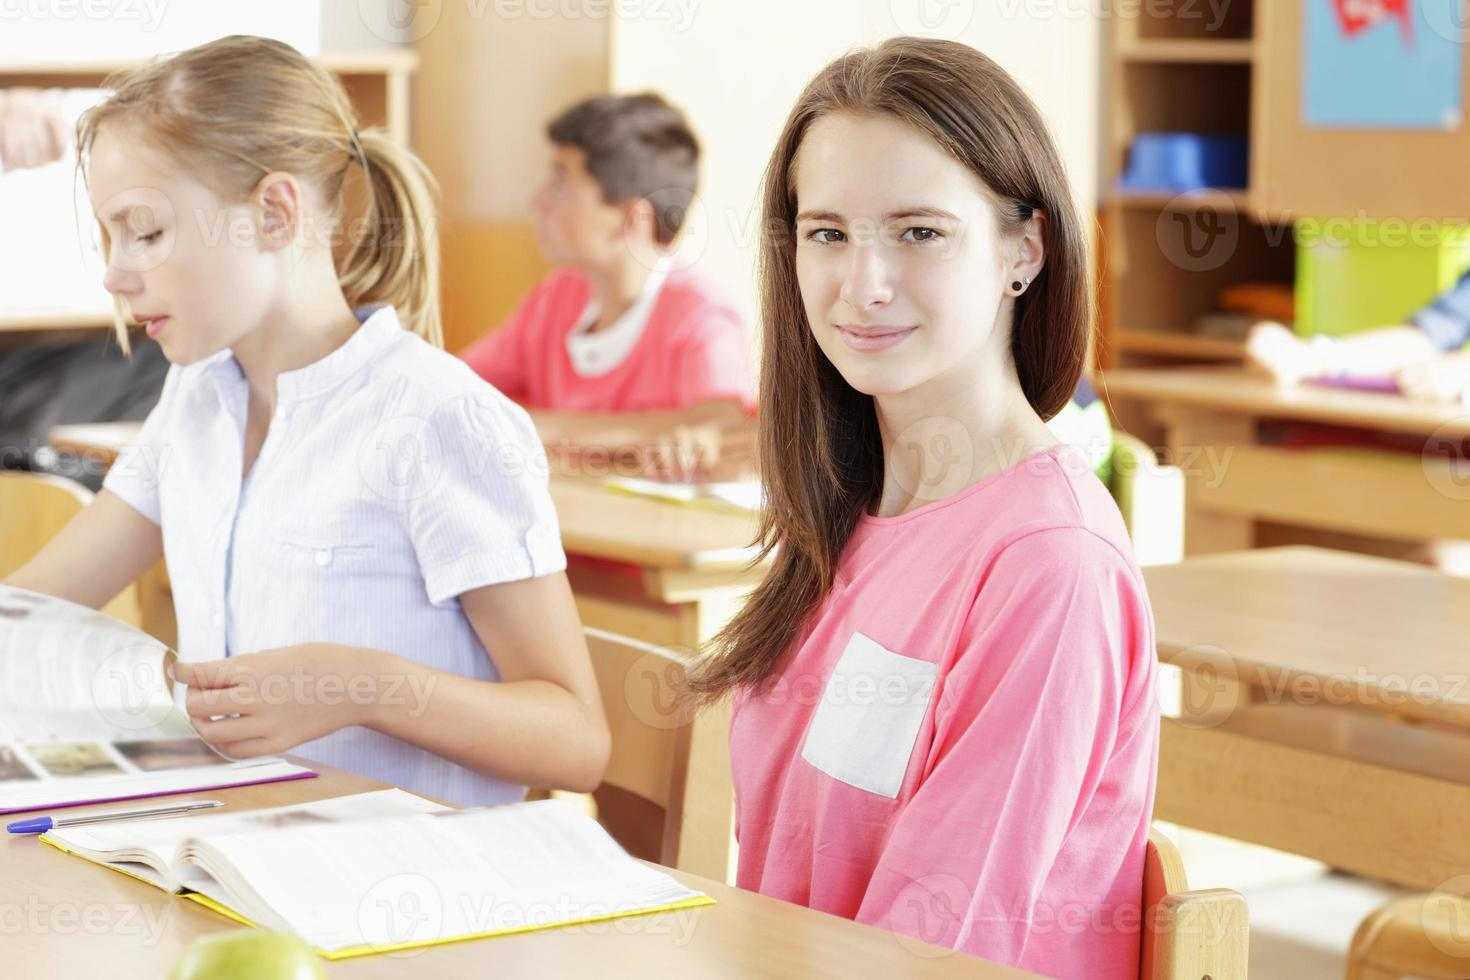 Students working in Classroom photo